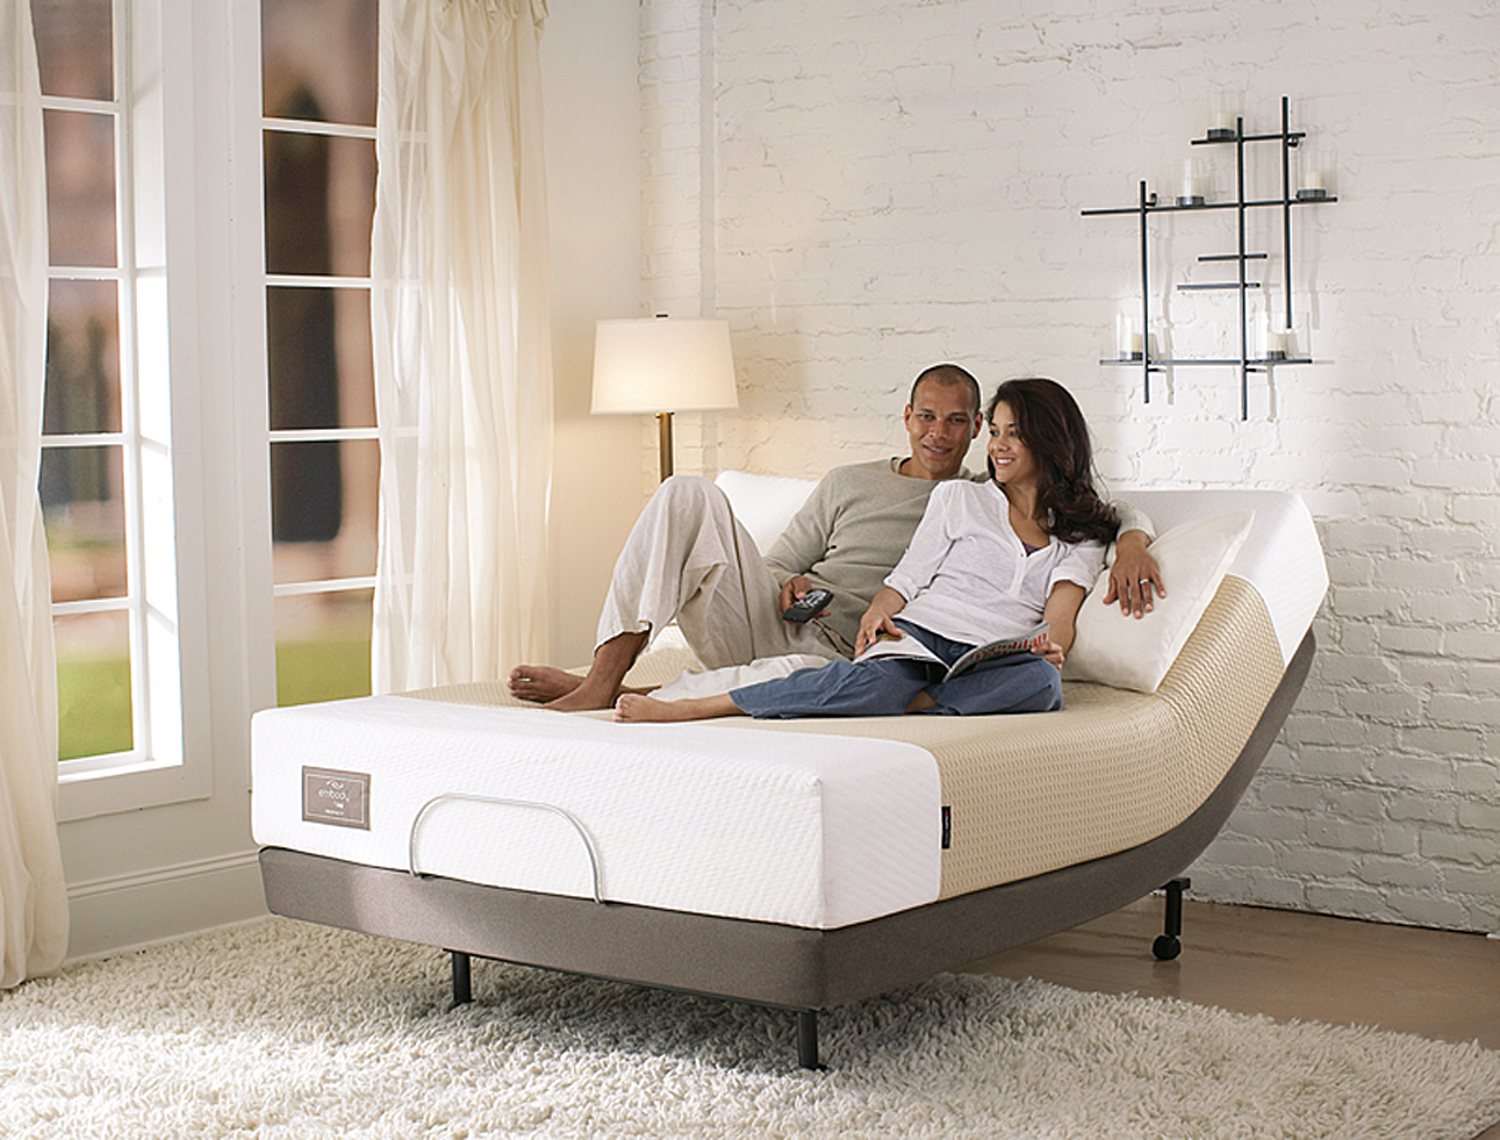 Embody By Sealy Introspection Memory Foam Adjustable Bed